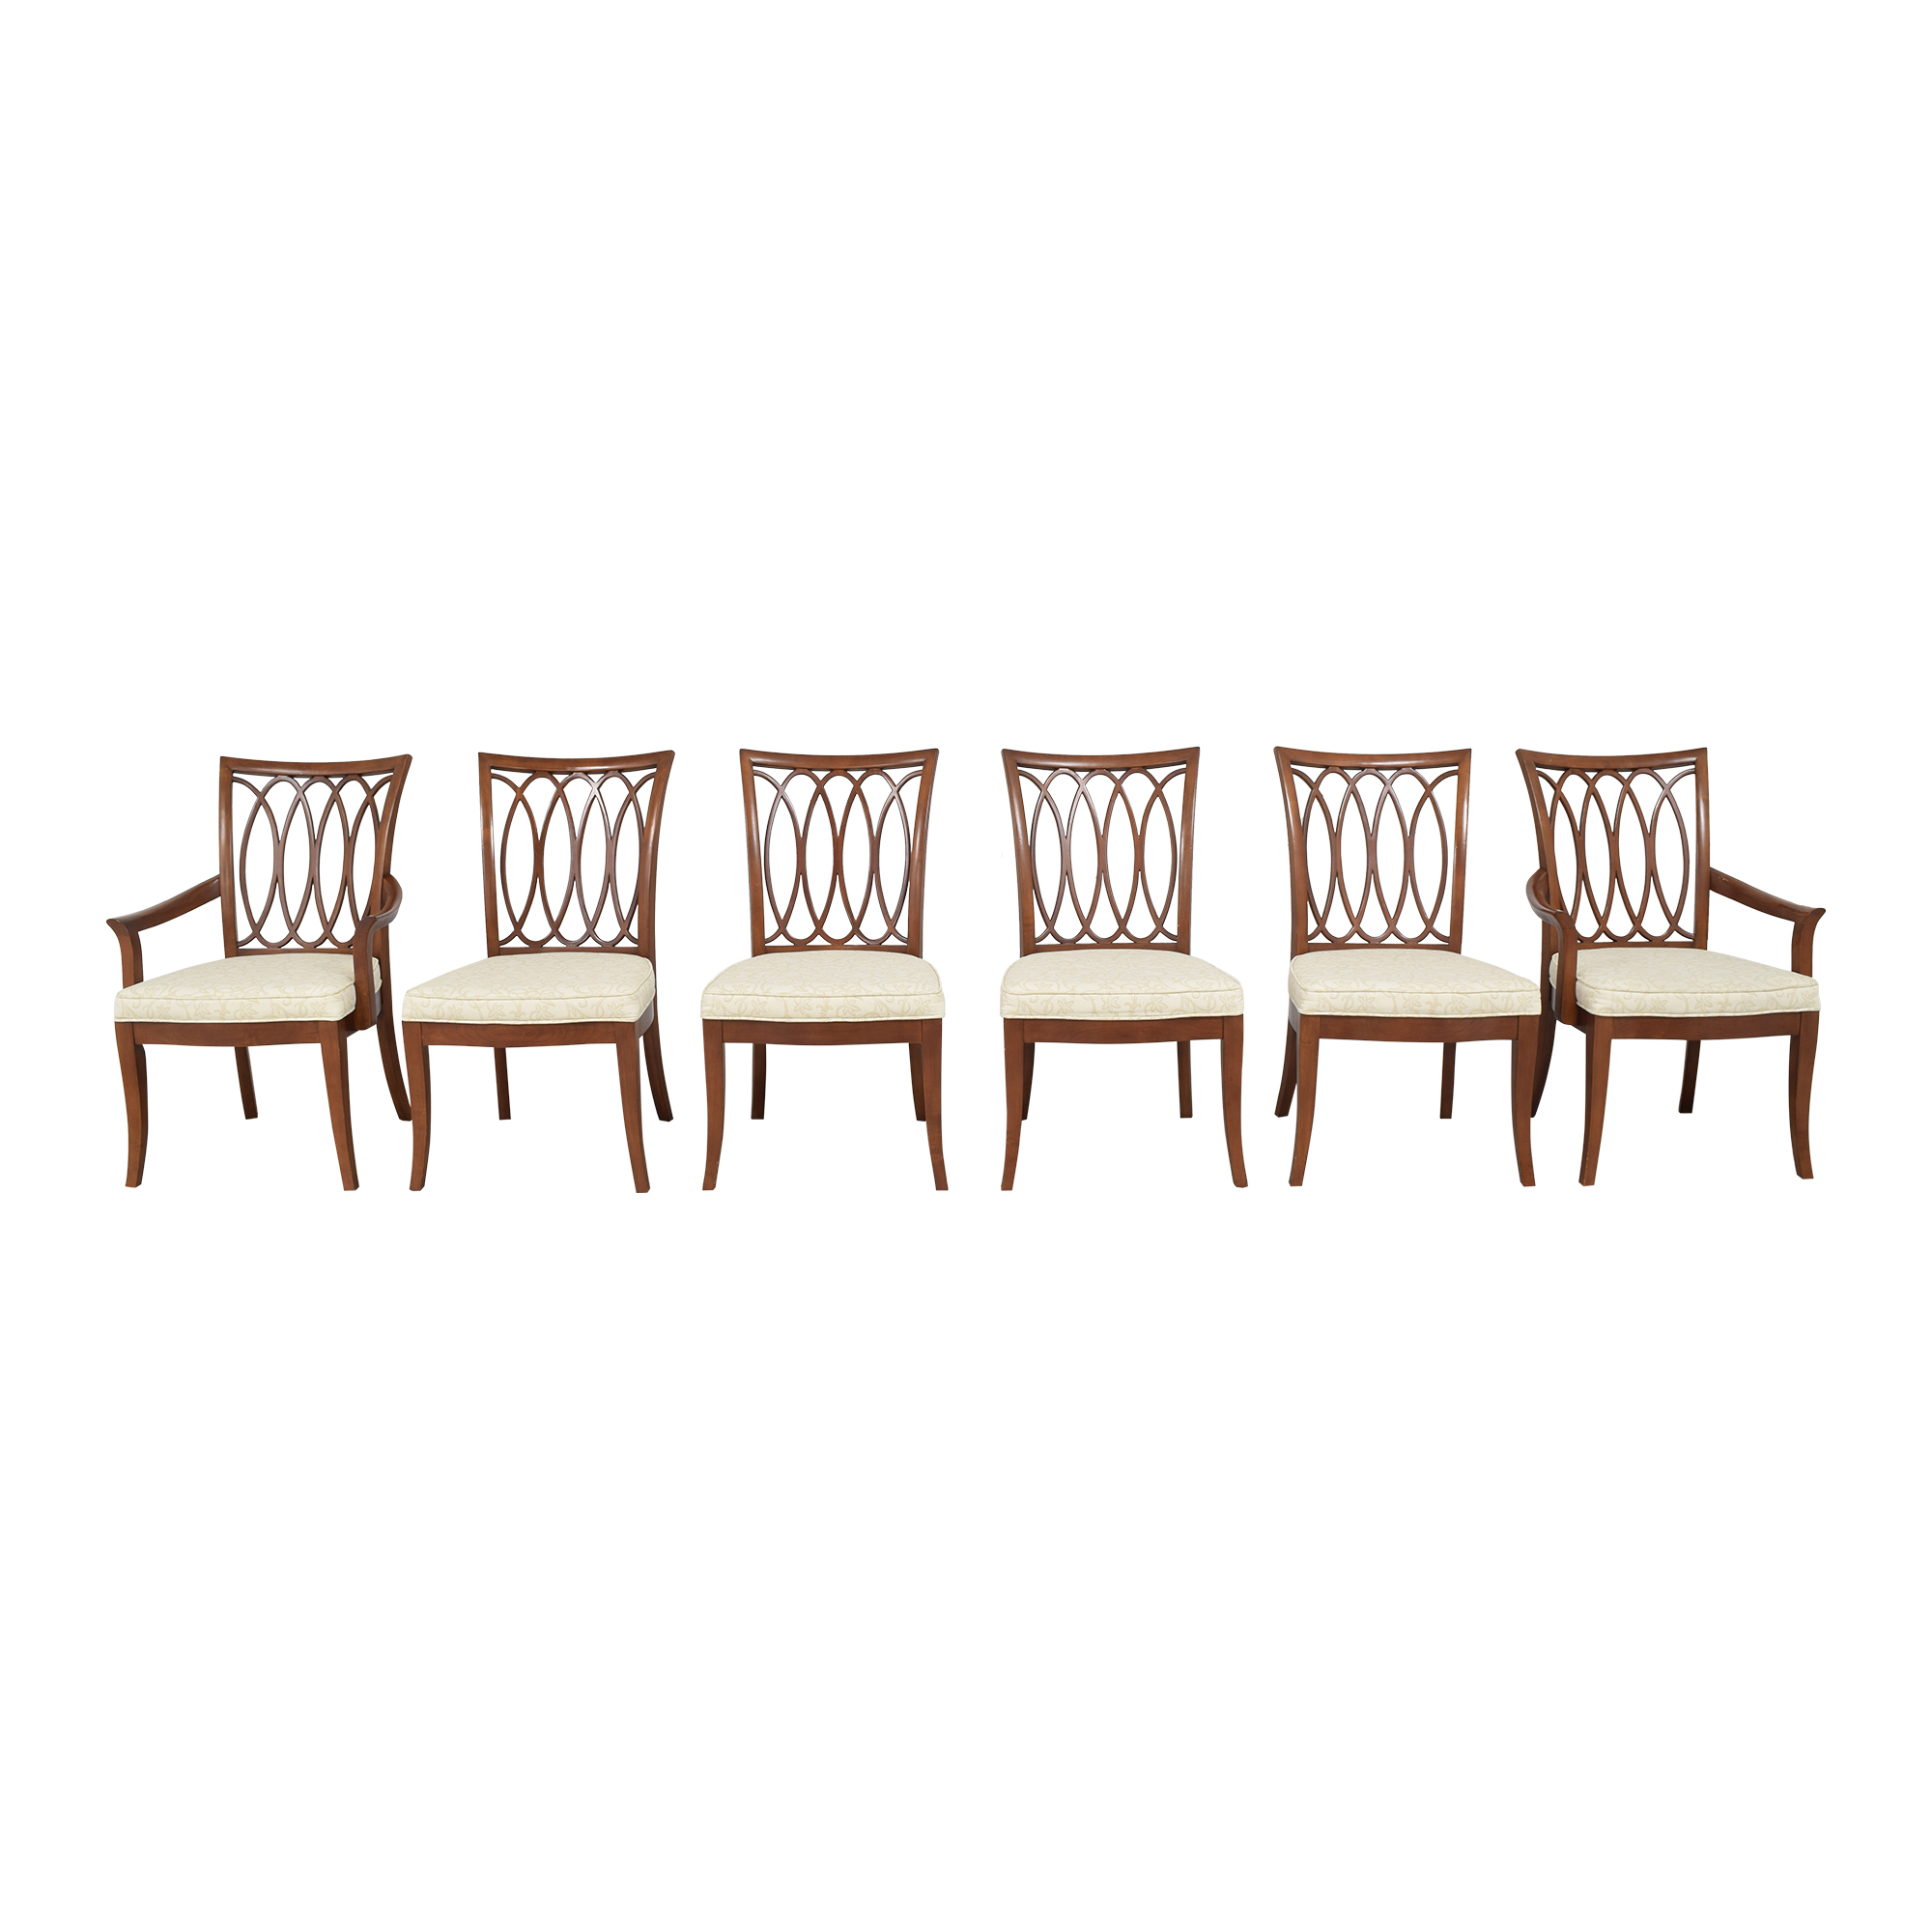 Stanley Furniture Stanley Furniture Hudson Street Dining Chairs used